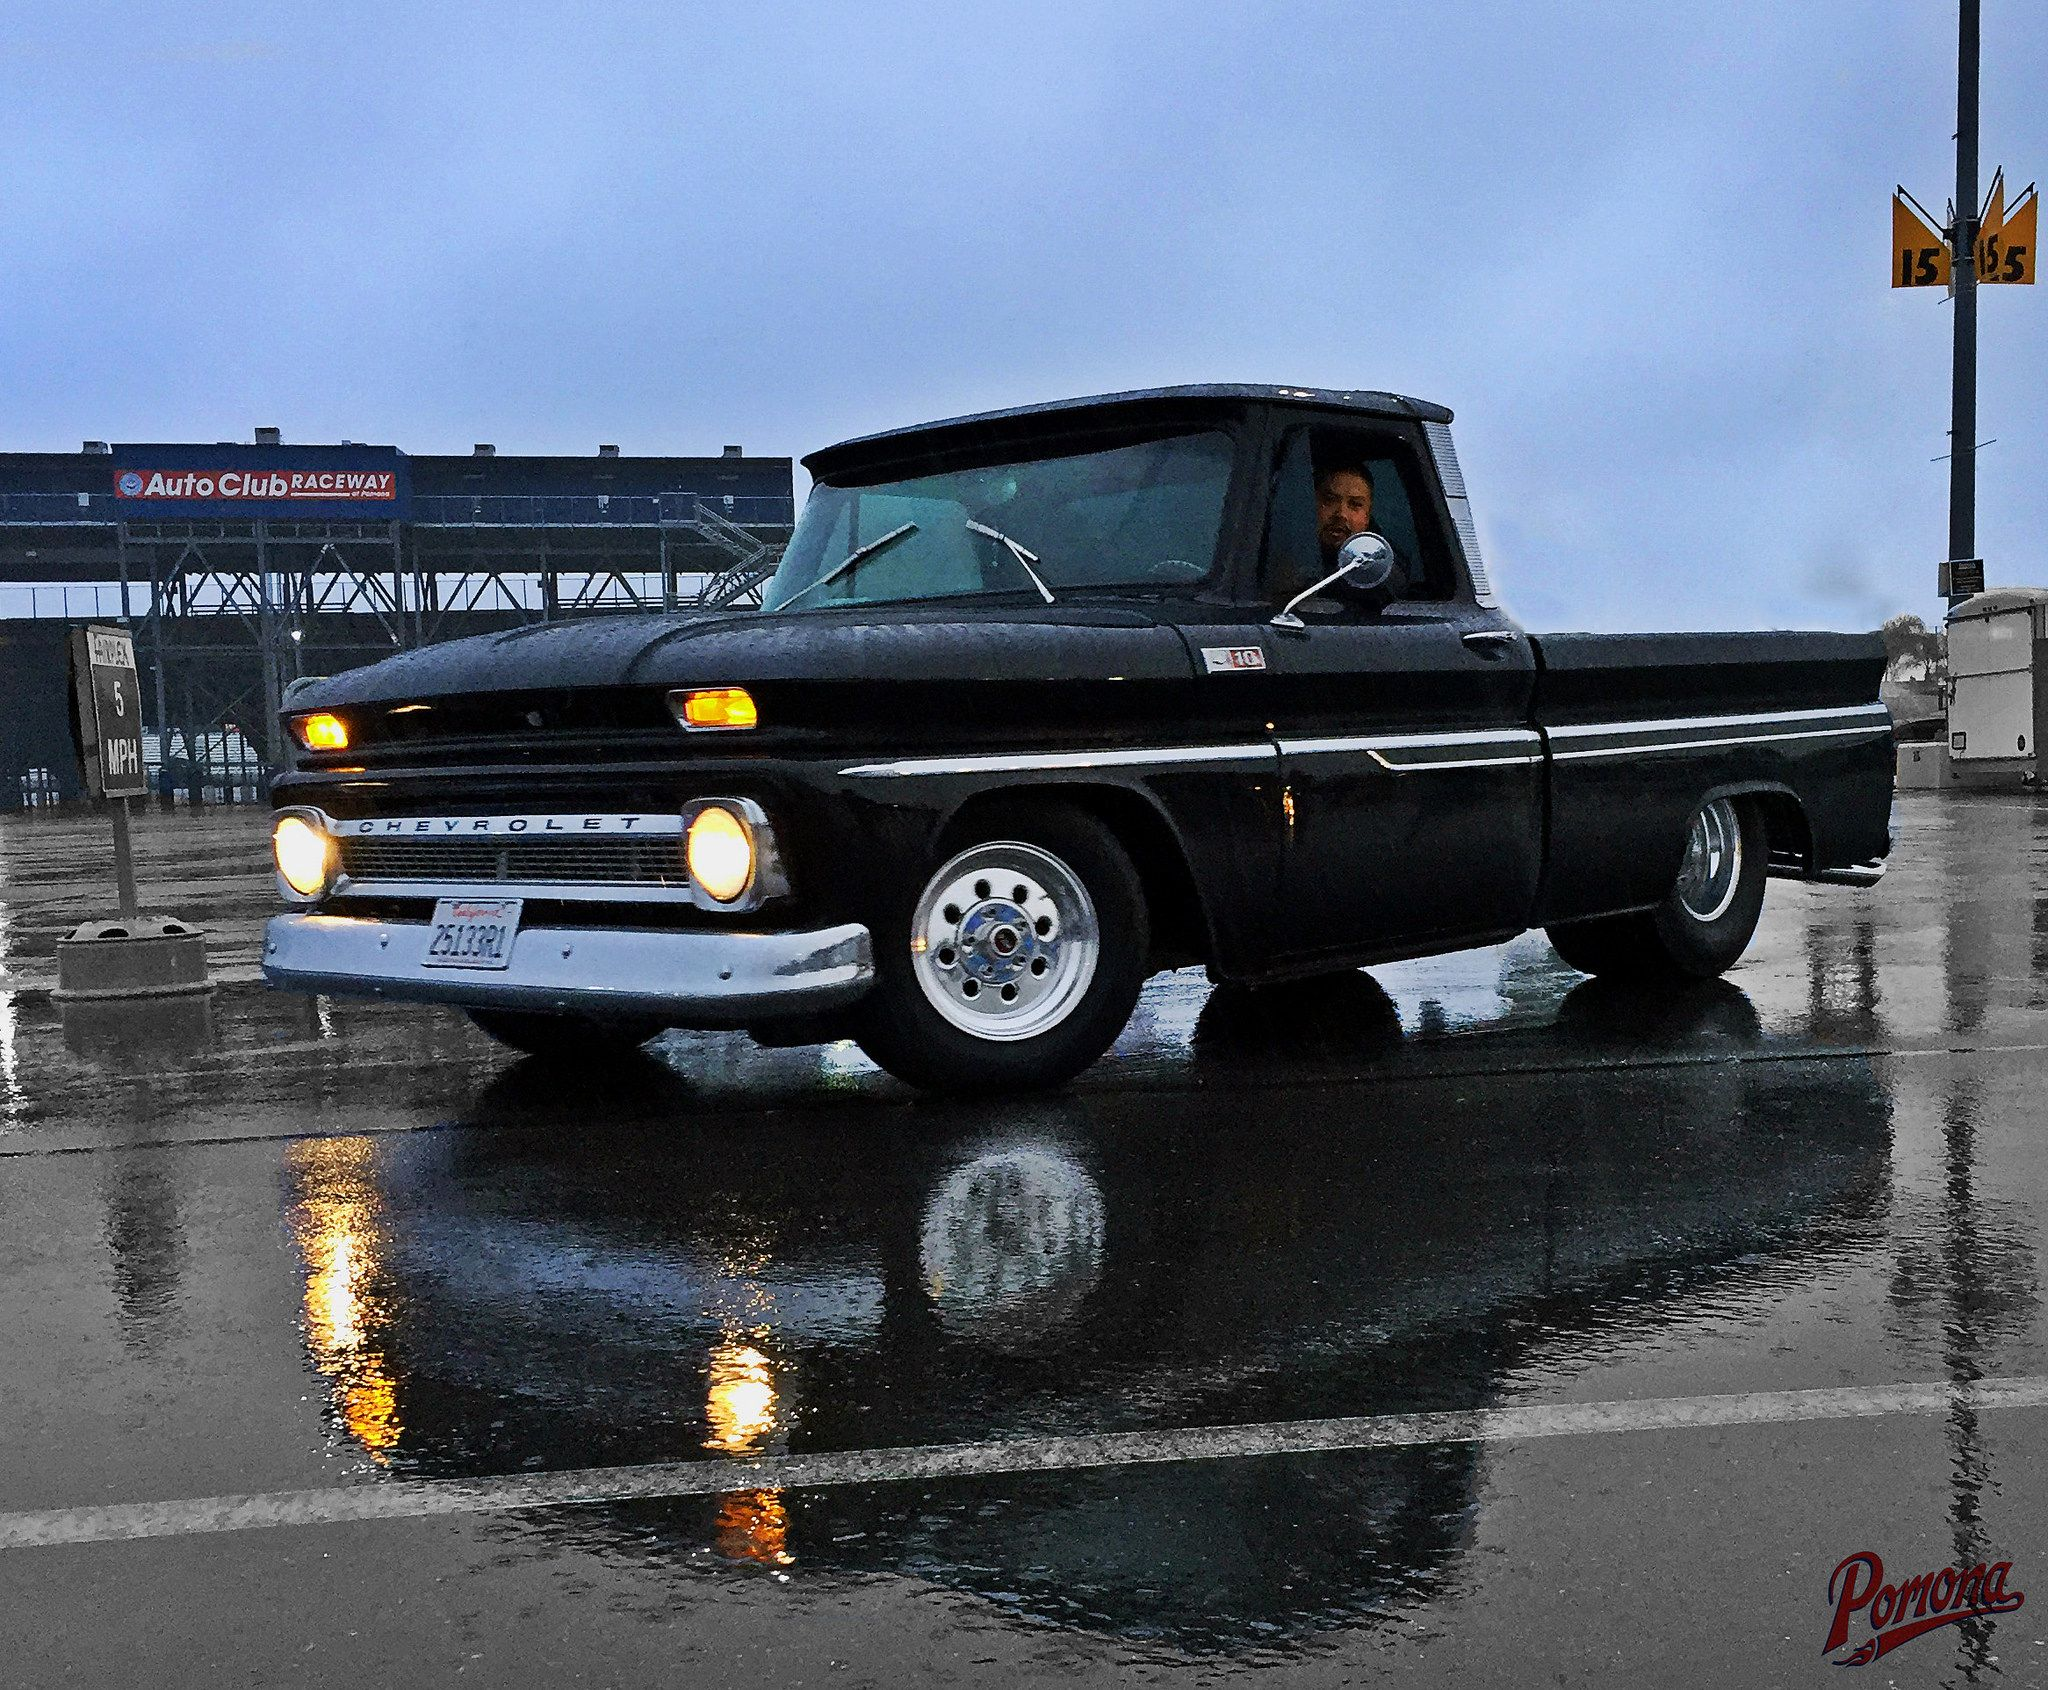 1978 chevy stepside truck lifted 1978 chevy 7 500 aurora - 1965 Chevy Truck Rain Or Shine